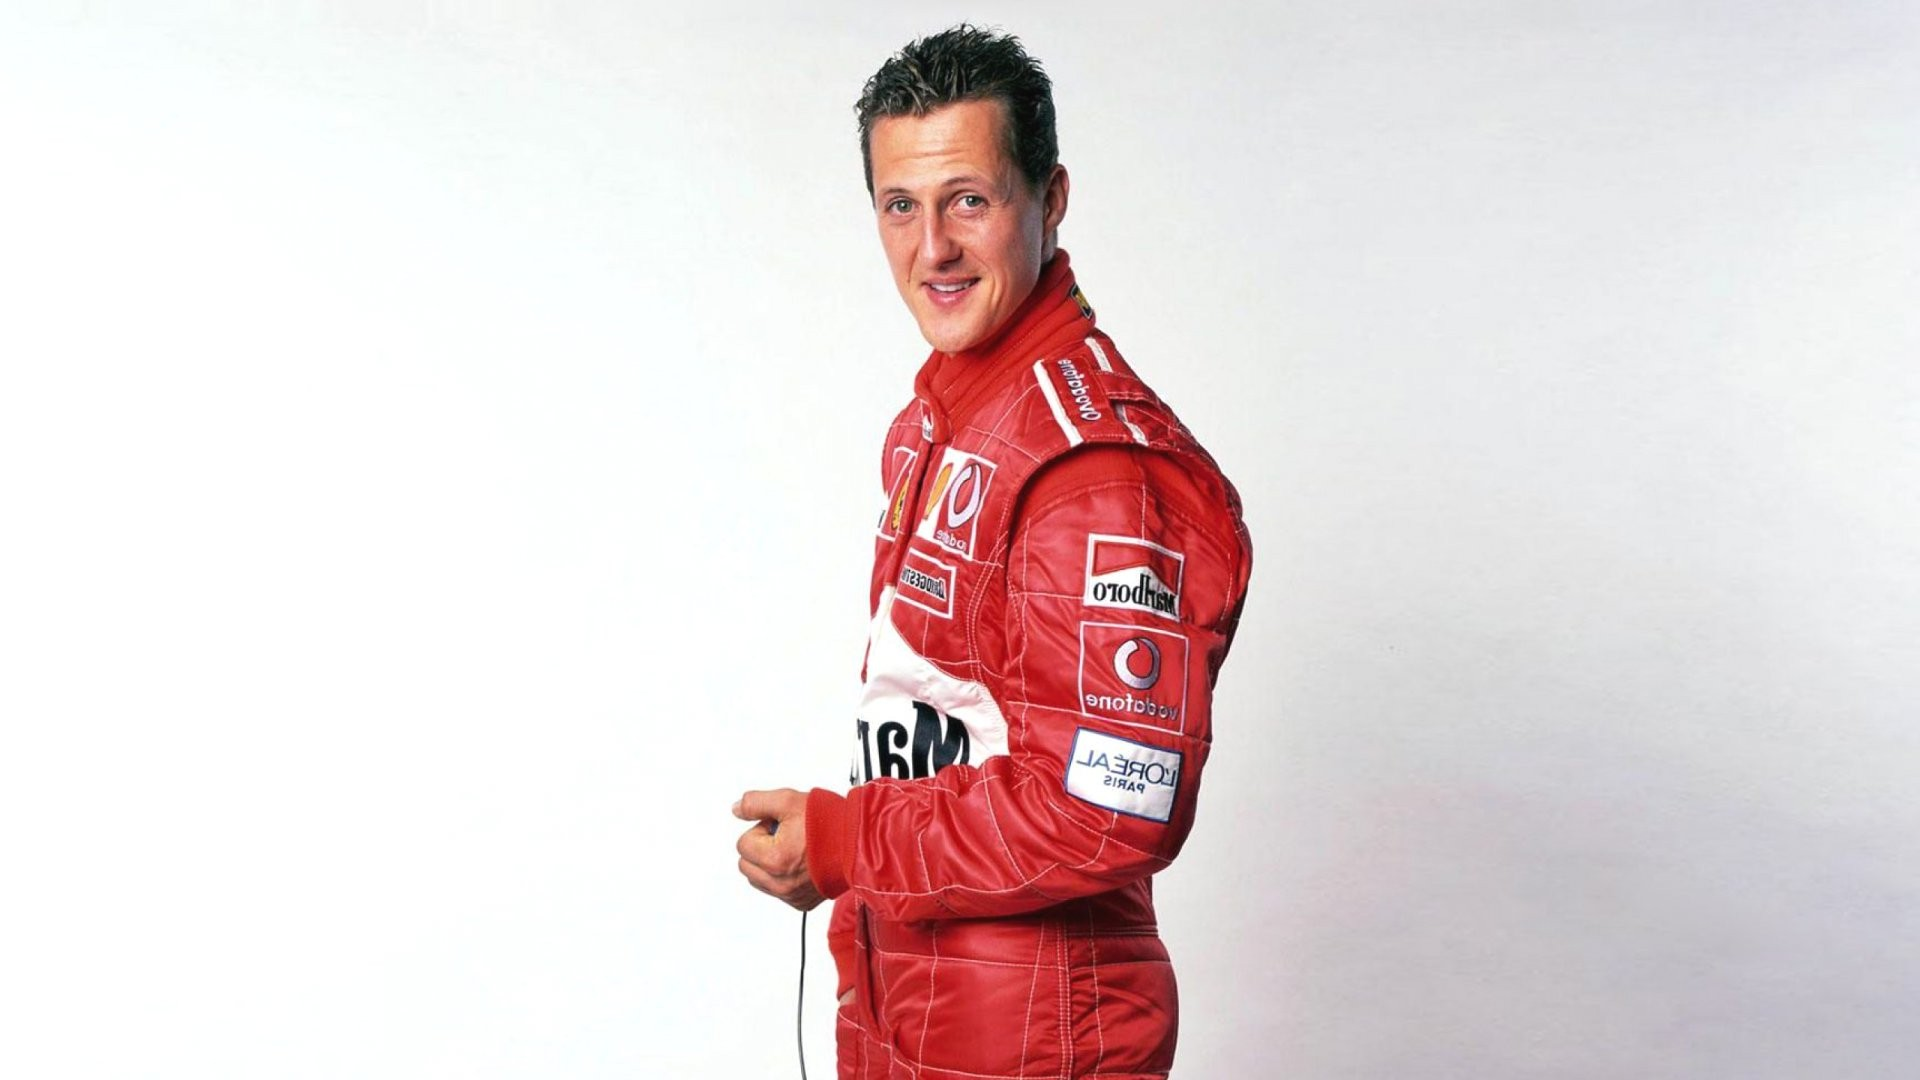 michael schumacher wallpaper 1920x1080 50314. Black Bedroom Furniture Sets. Home Design Ideas